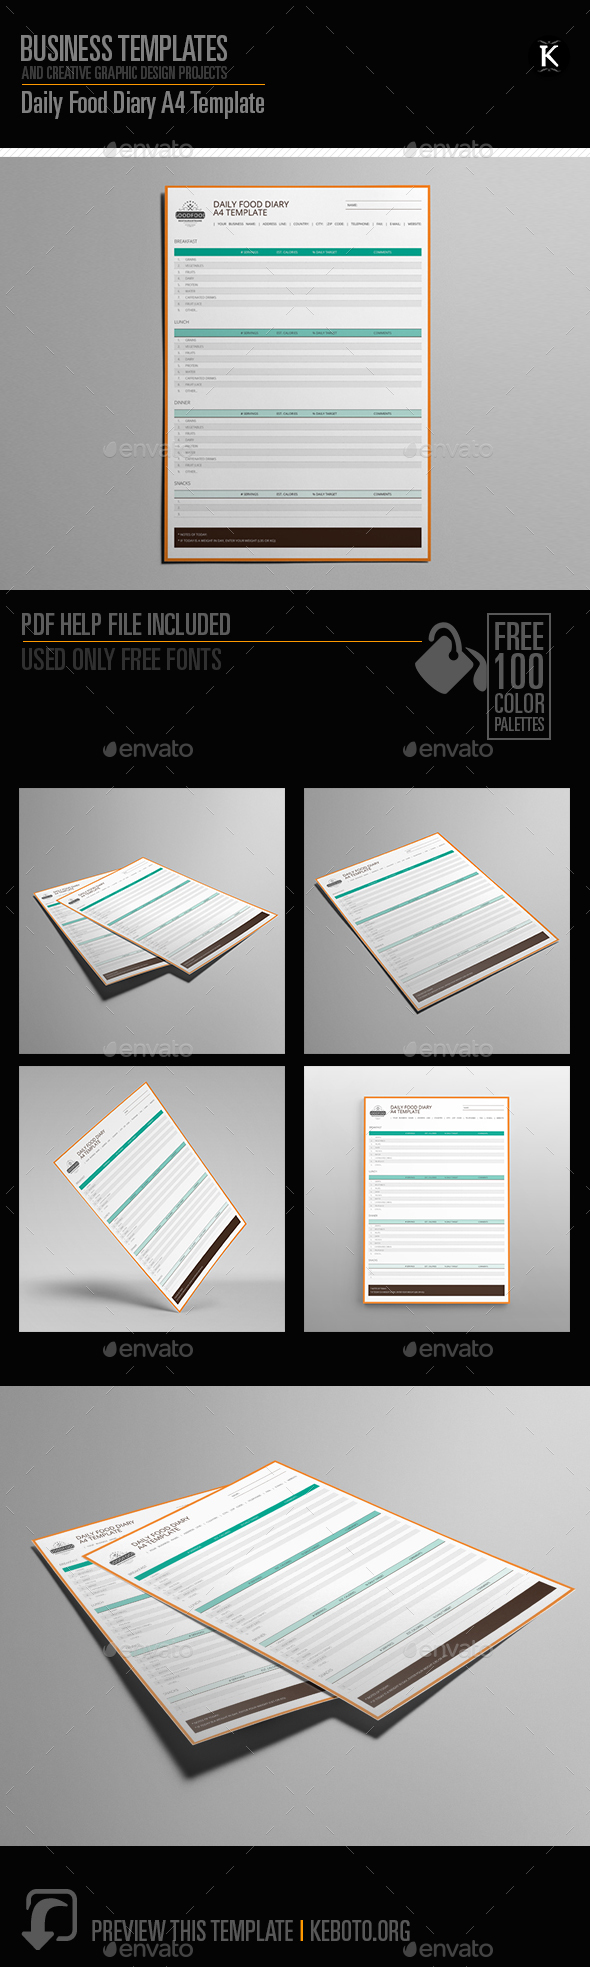 Daily Food Diary A4 Template - Miscellaneous Print Templates